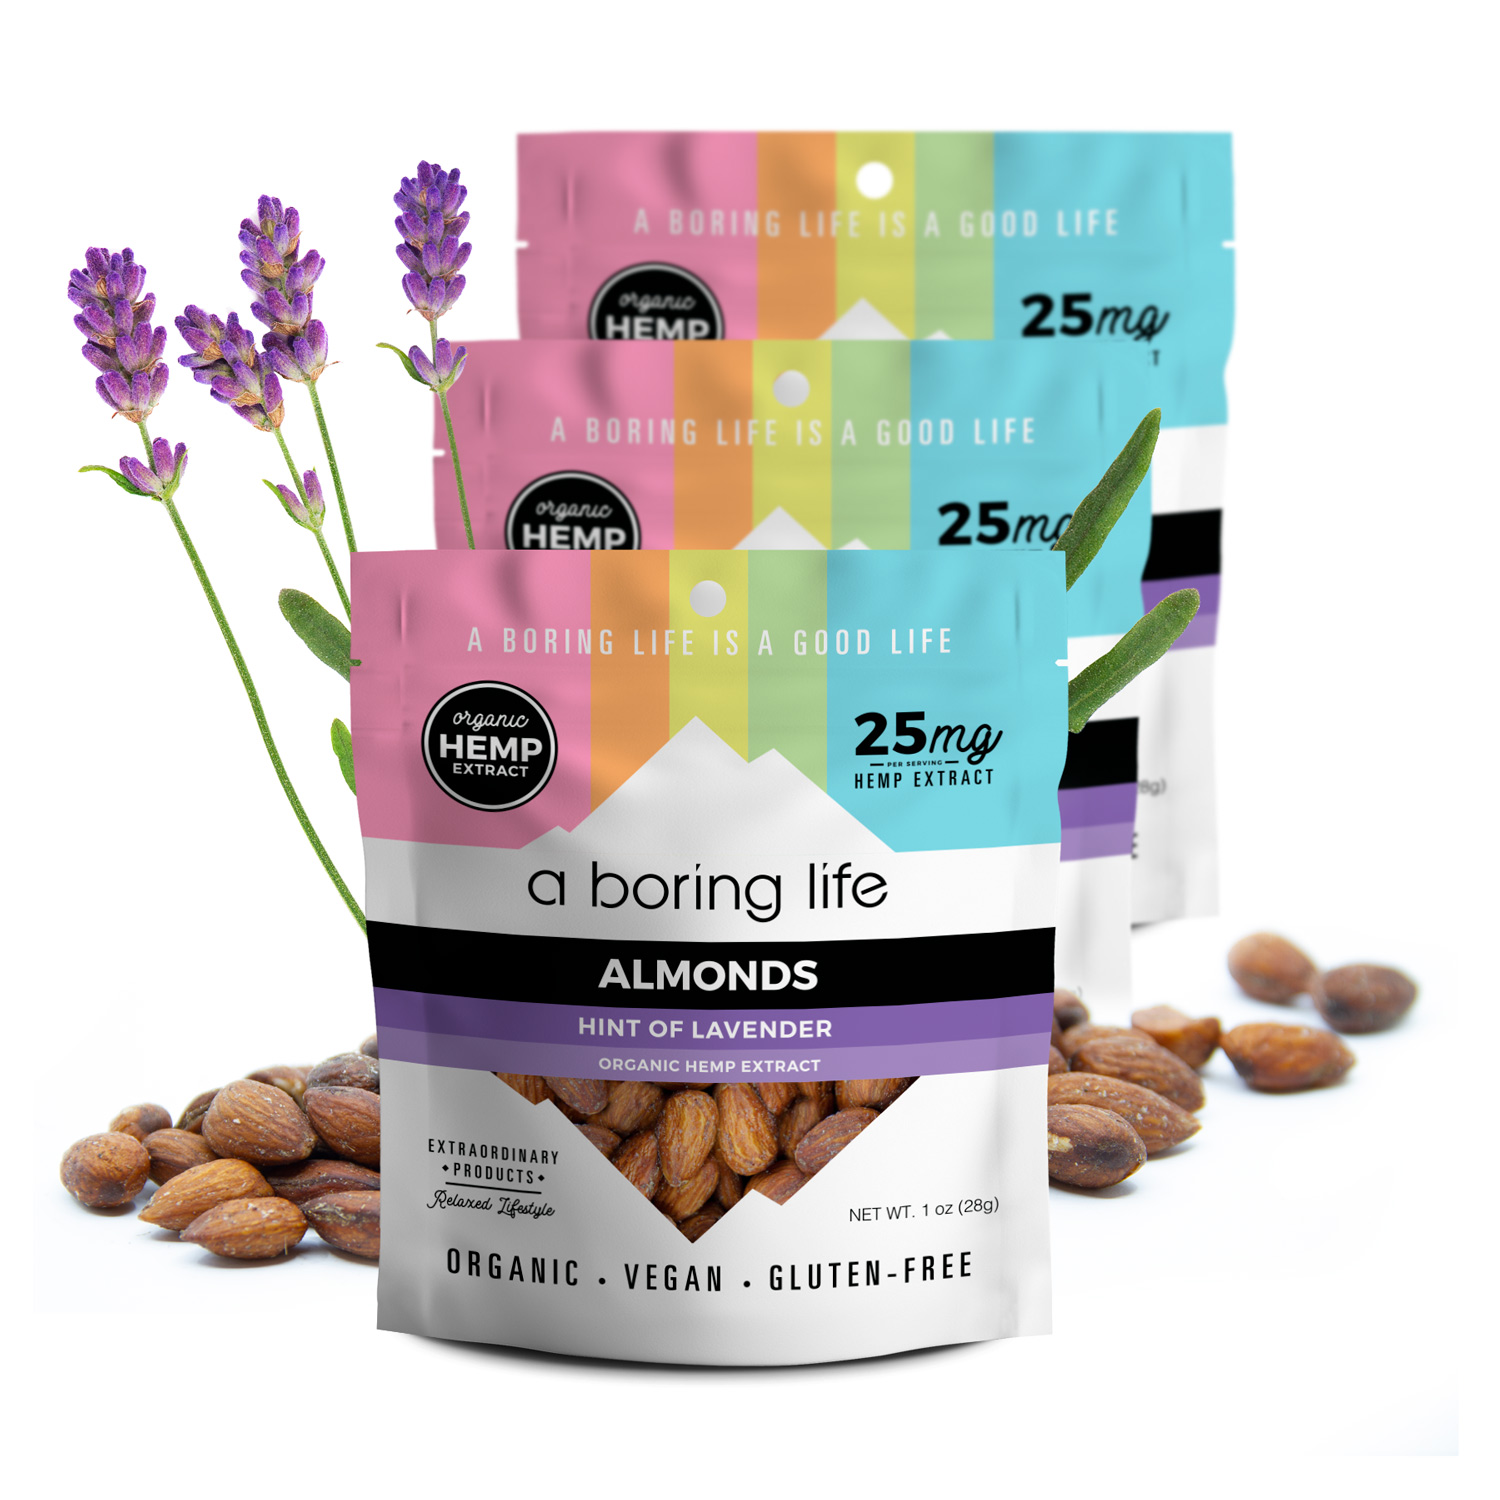 3 pack - Roasted Almonds with a Hint of Lavender, Pack of 3